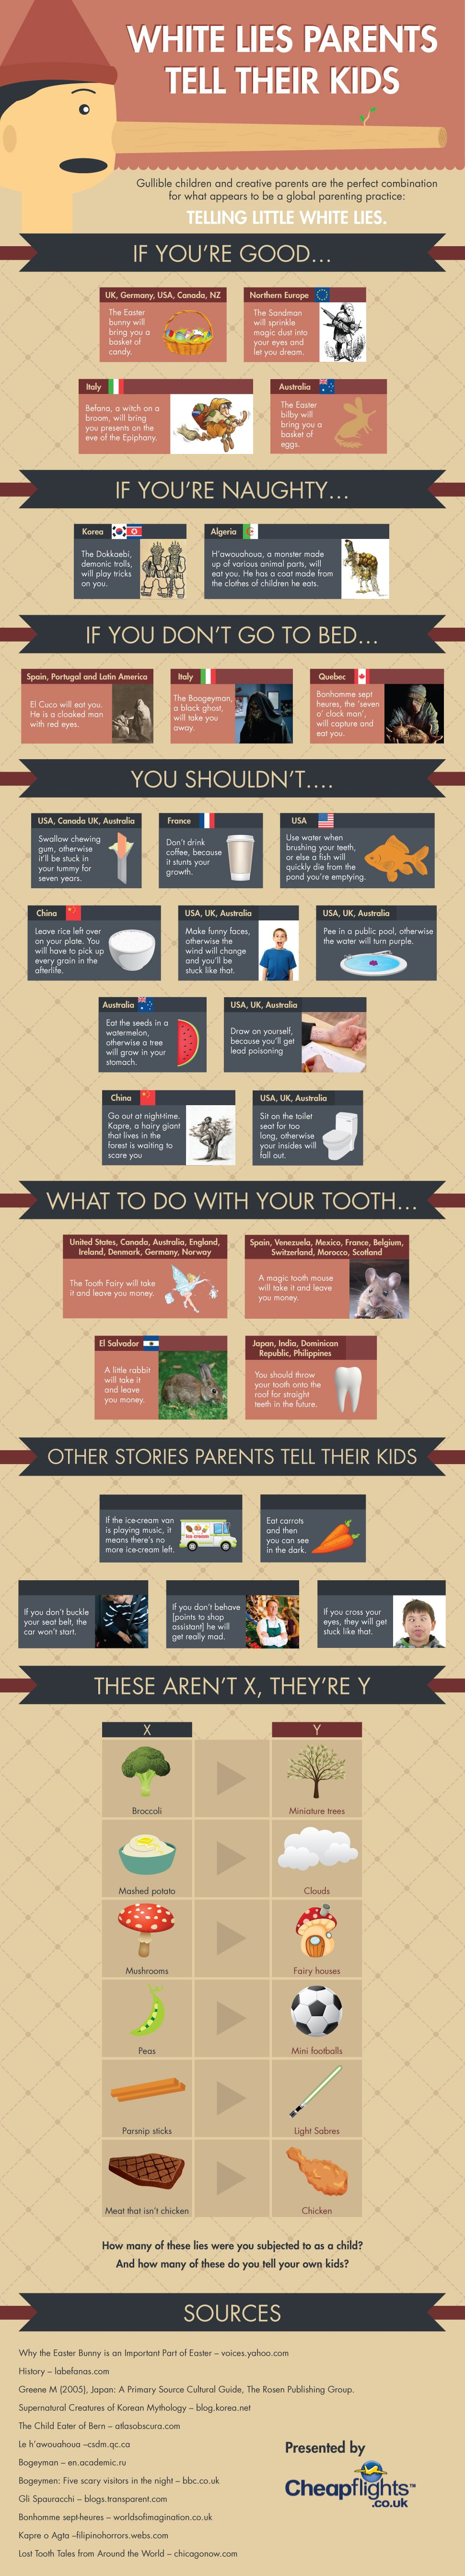 Infographic: The little white lies that parents tell their kids